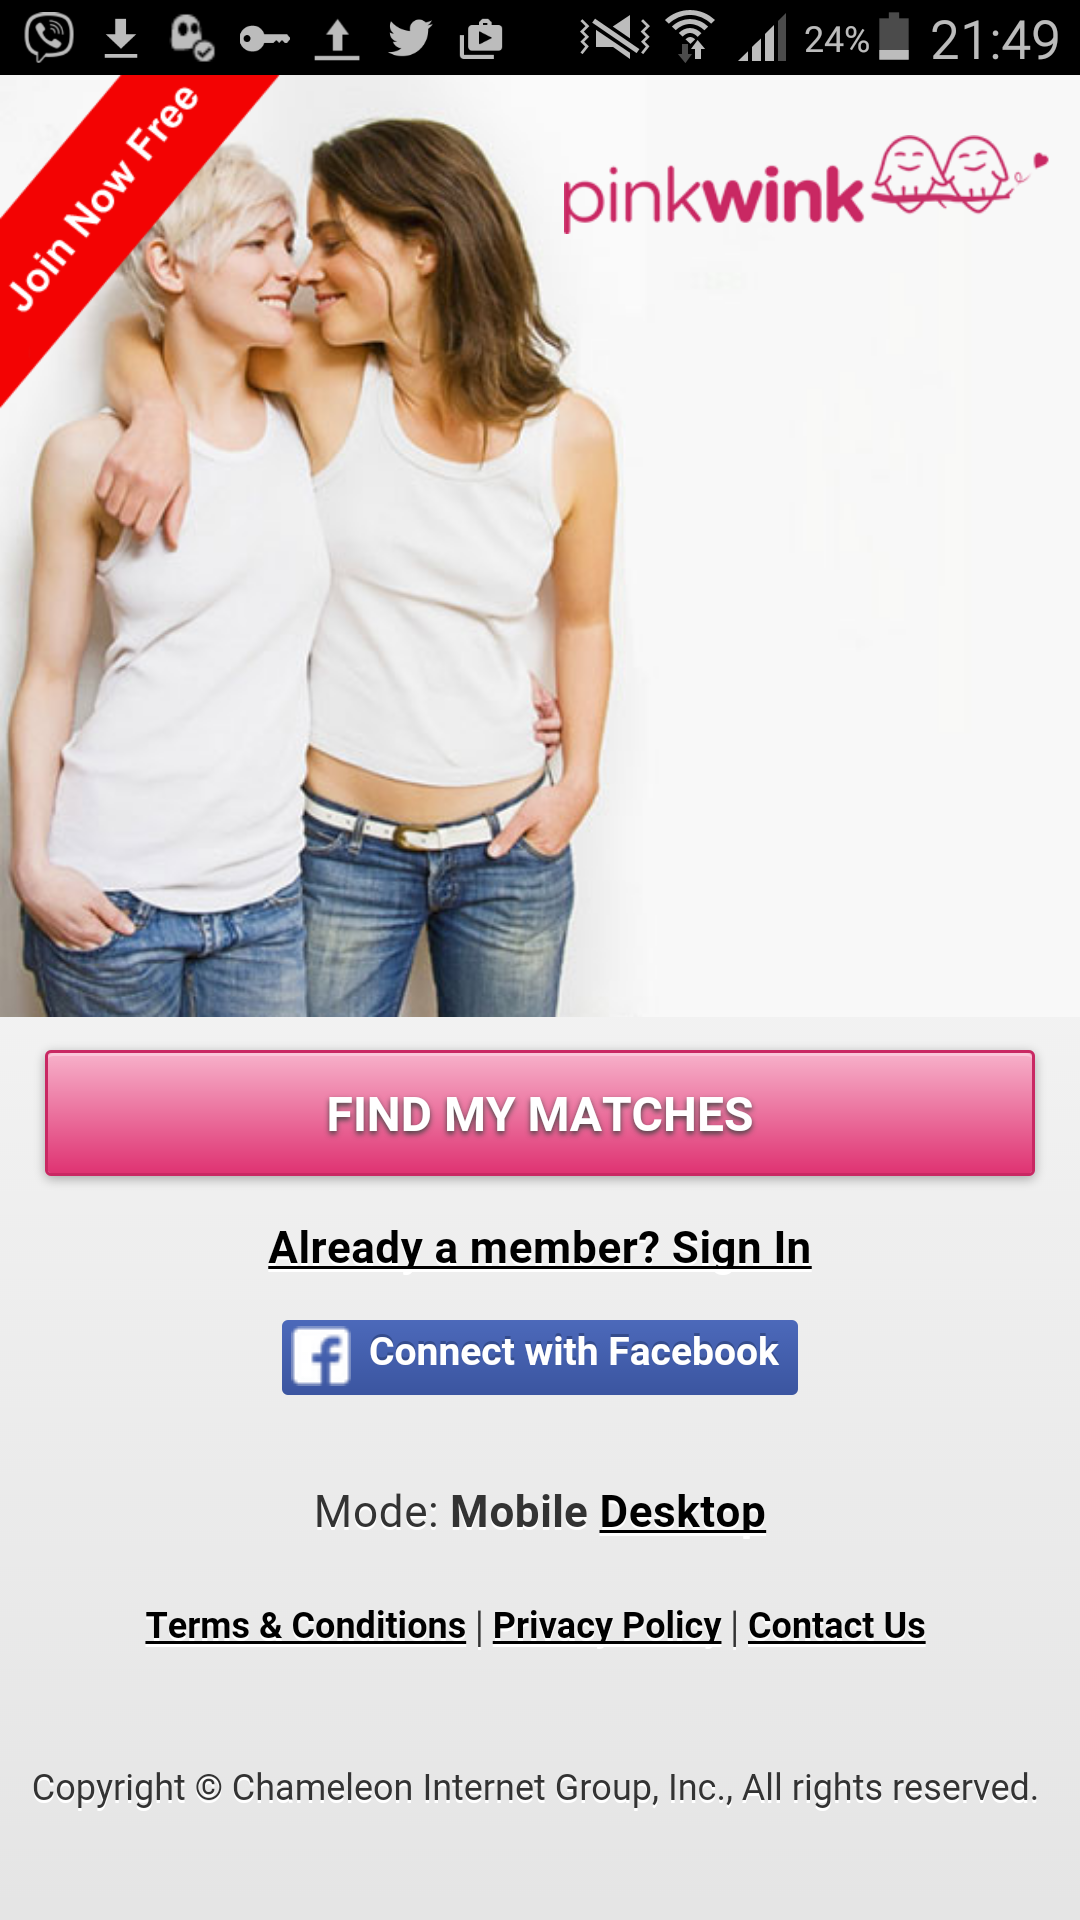 hambleton lesbian dating site The #1 site for hambleton dating if you're looking for dates in hambleton and want to meet single men or women - visit date lancashire singles and join free today.